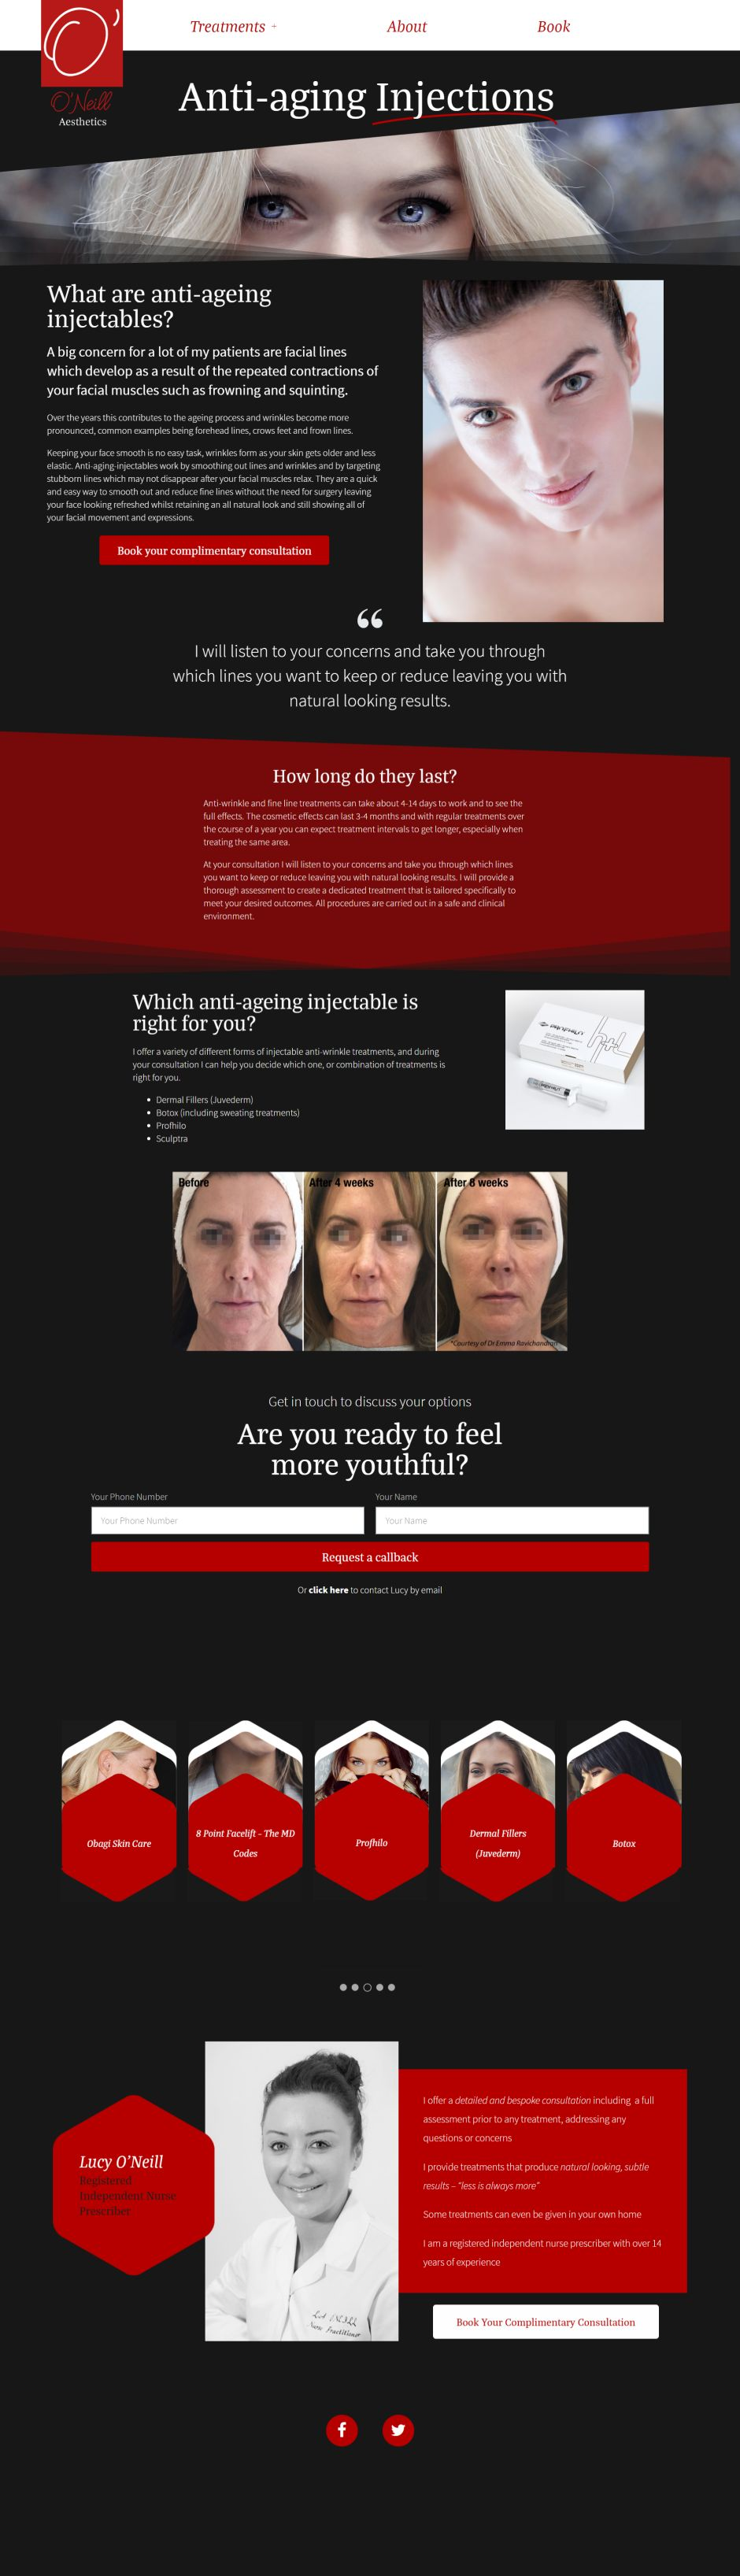 O'Neill Aesthetics Wordpress Web Design SP005 Anti Aging Injections